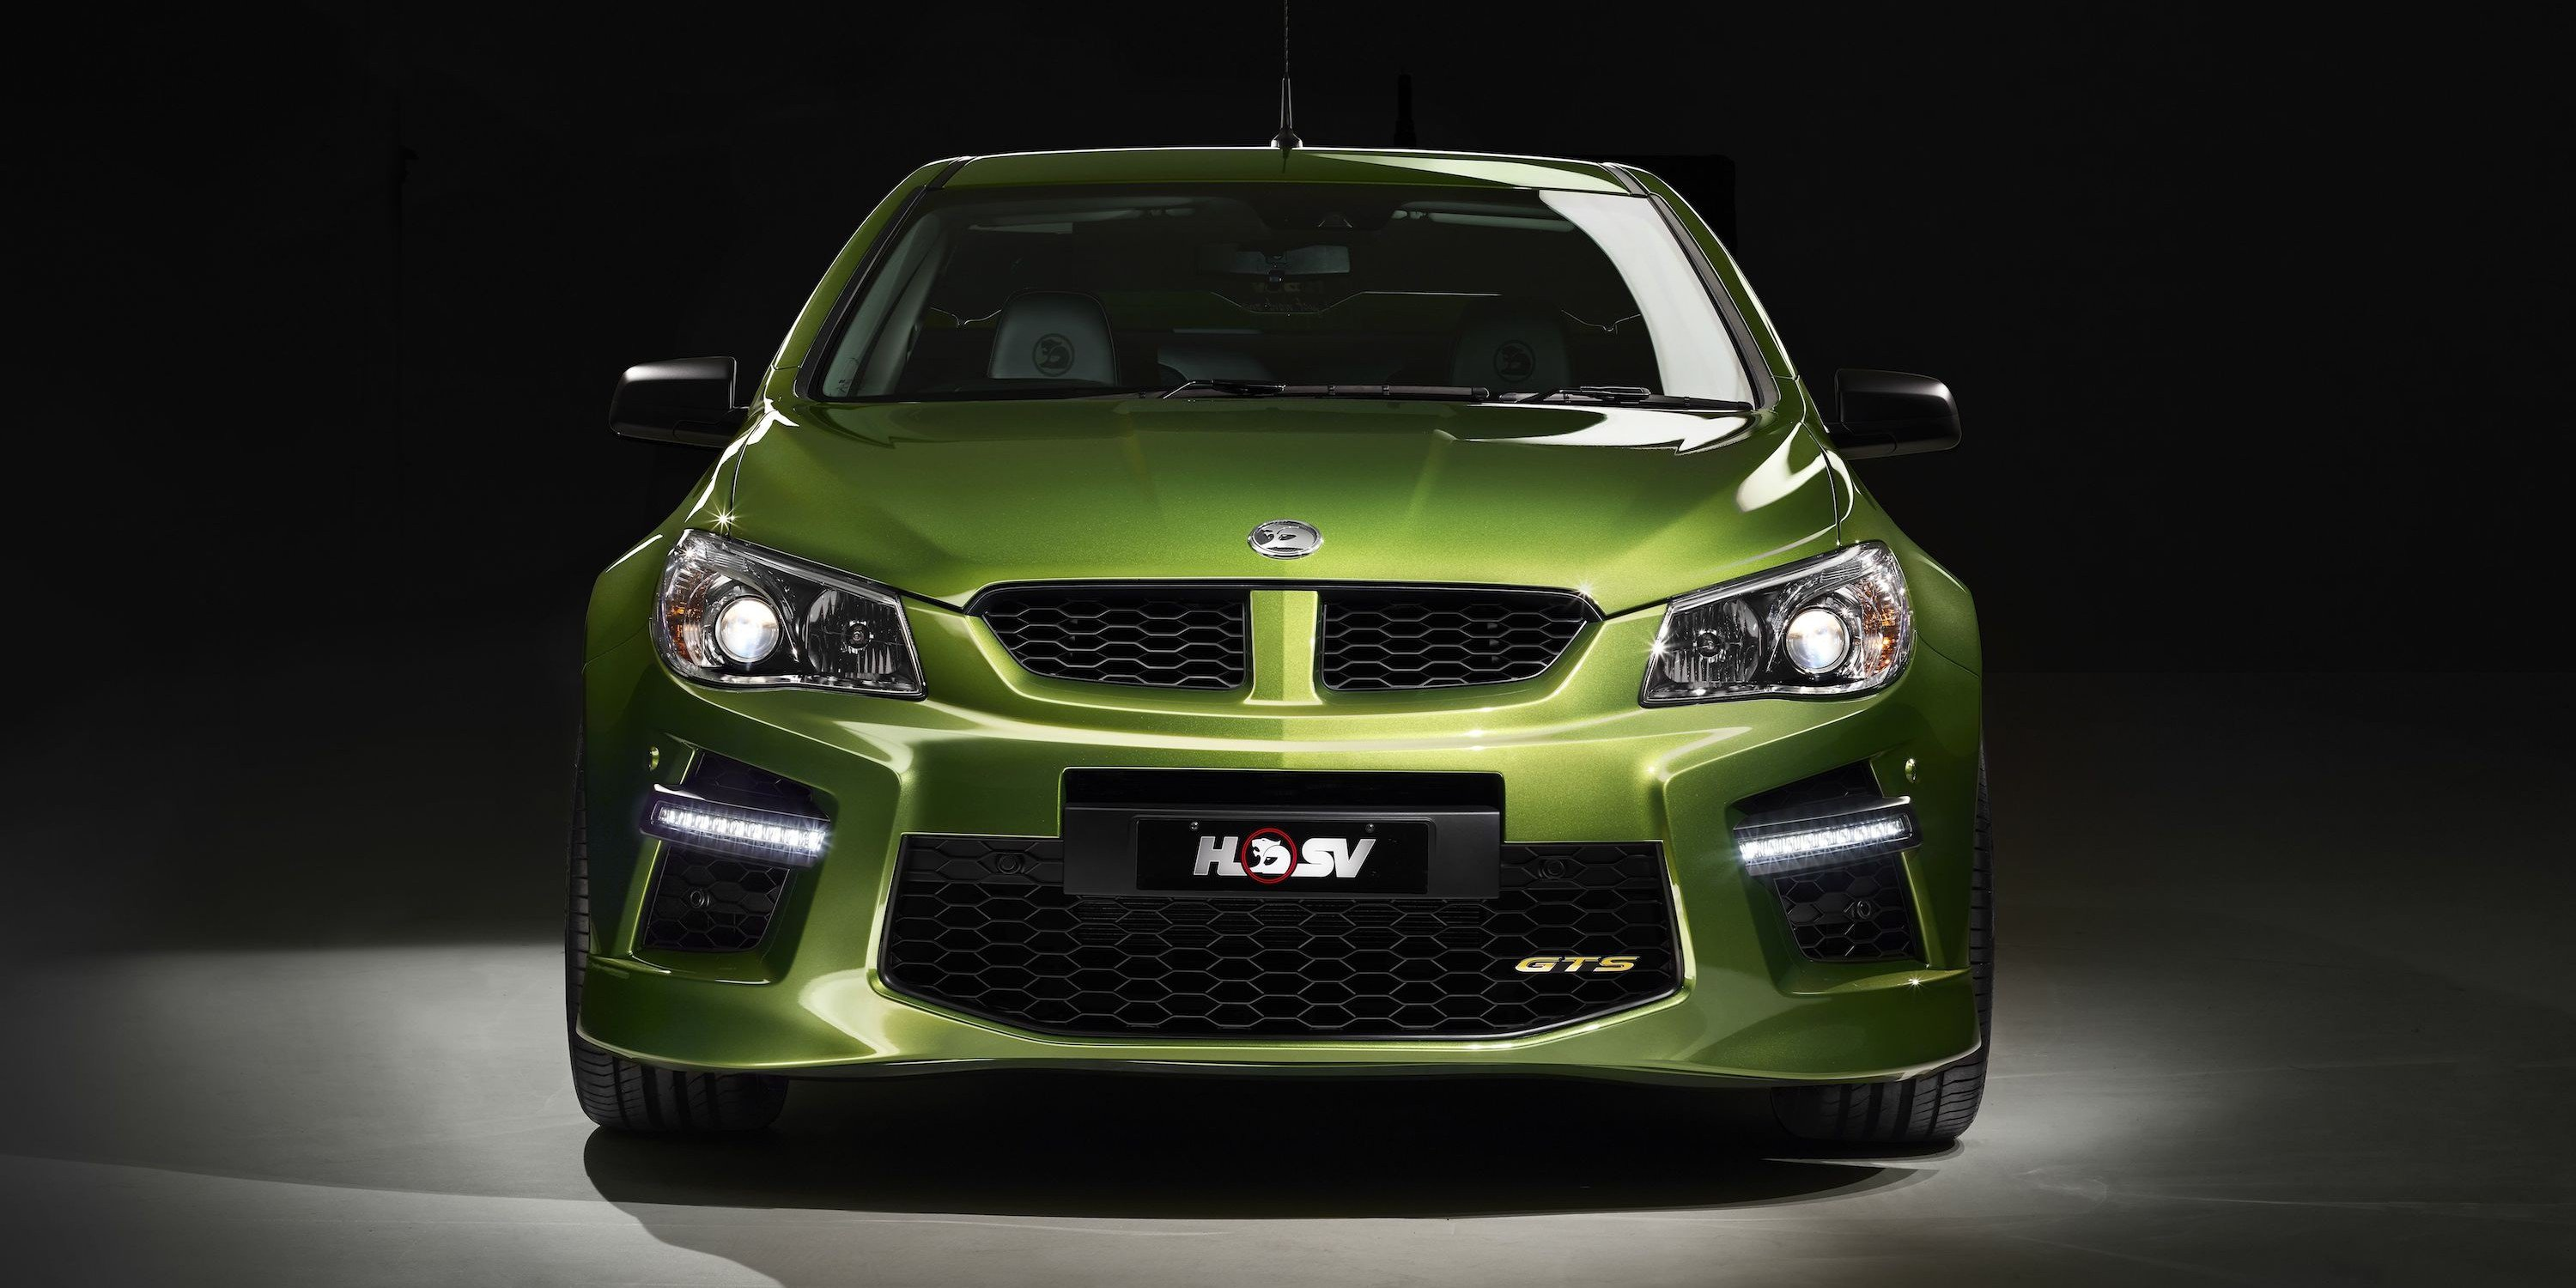 2015 hsv genf pricing and specifications photos 1 of 9